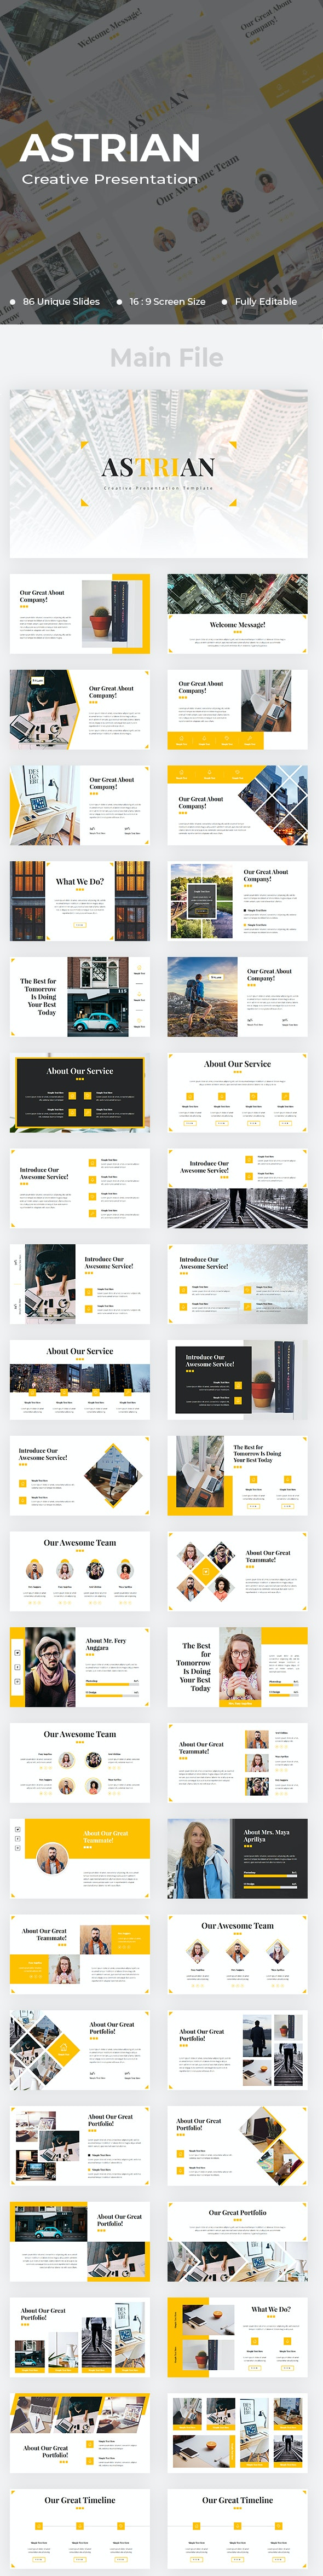 Astrian Creative PowerPoint - Creative PowerPoint Templates